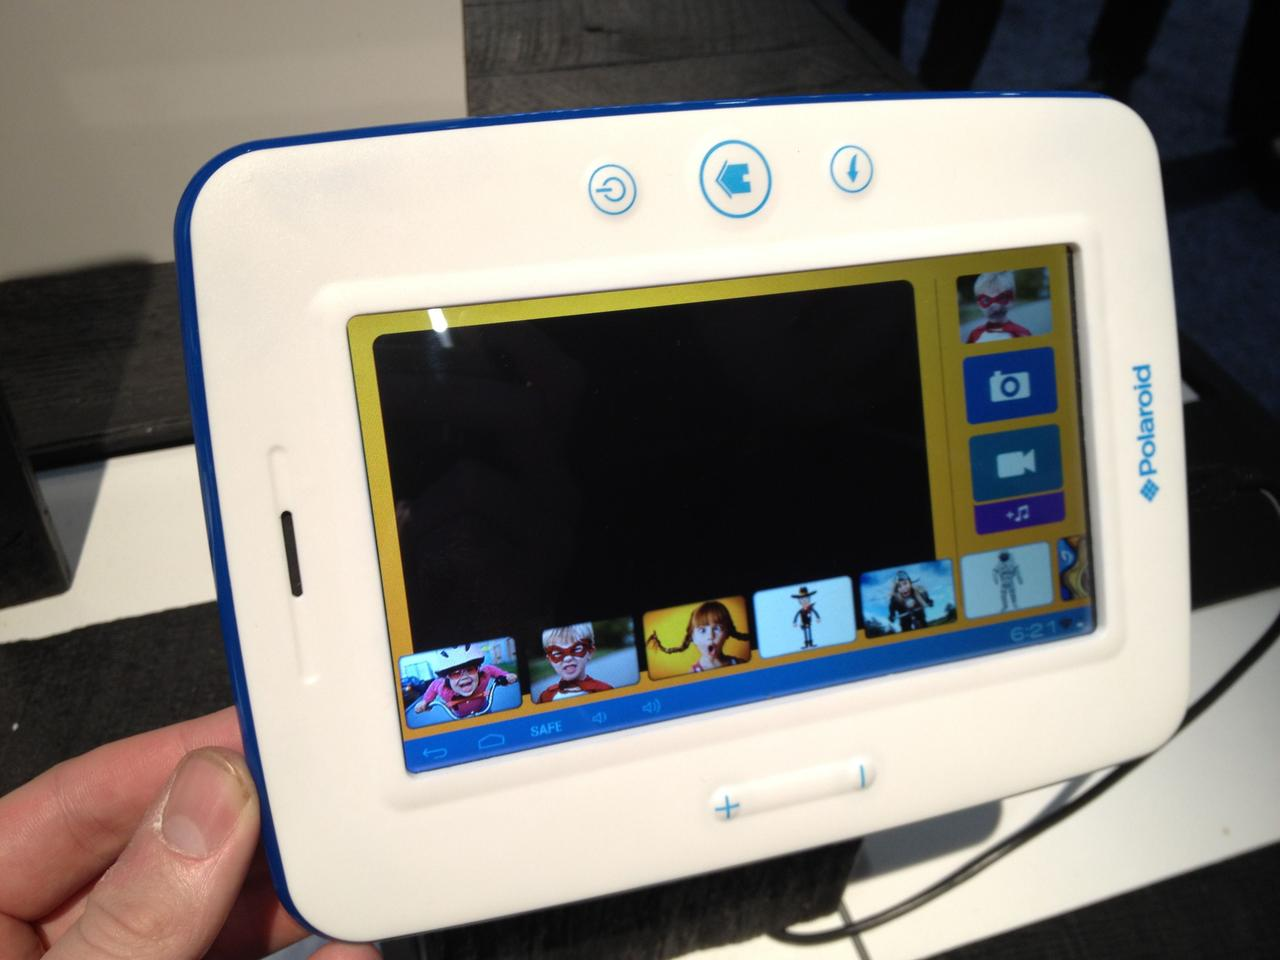 Polaroid has launched Kids Tablet, featuring educational and filtered entertainment apps